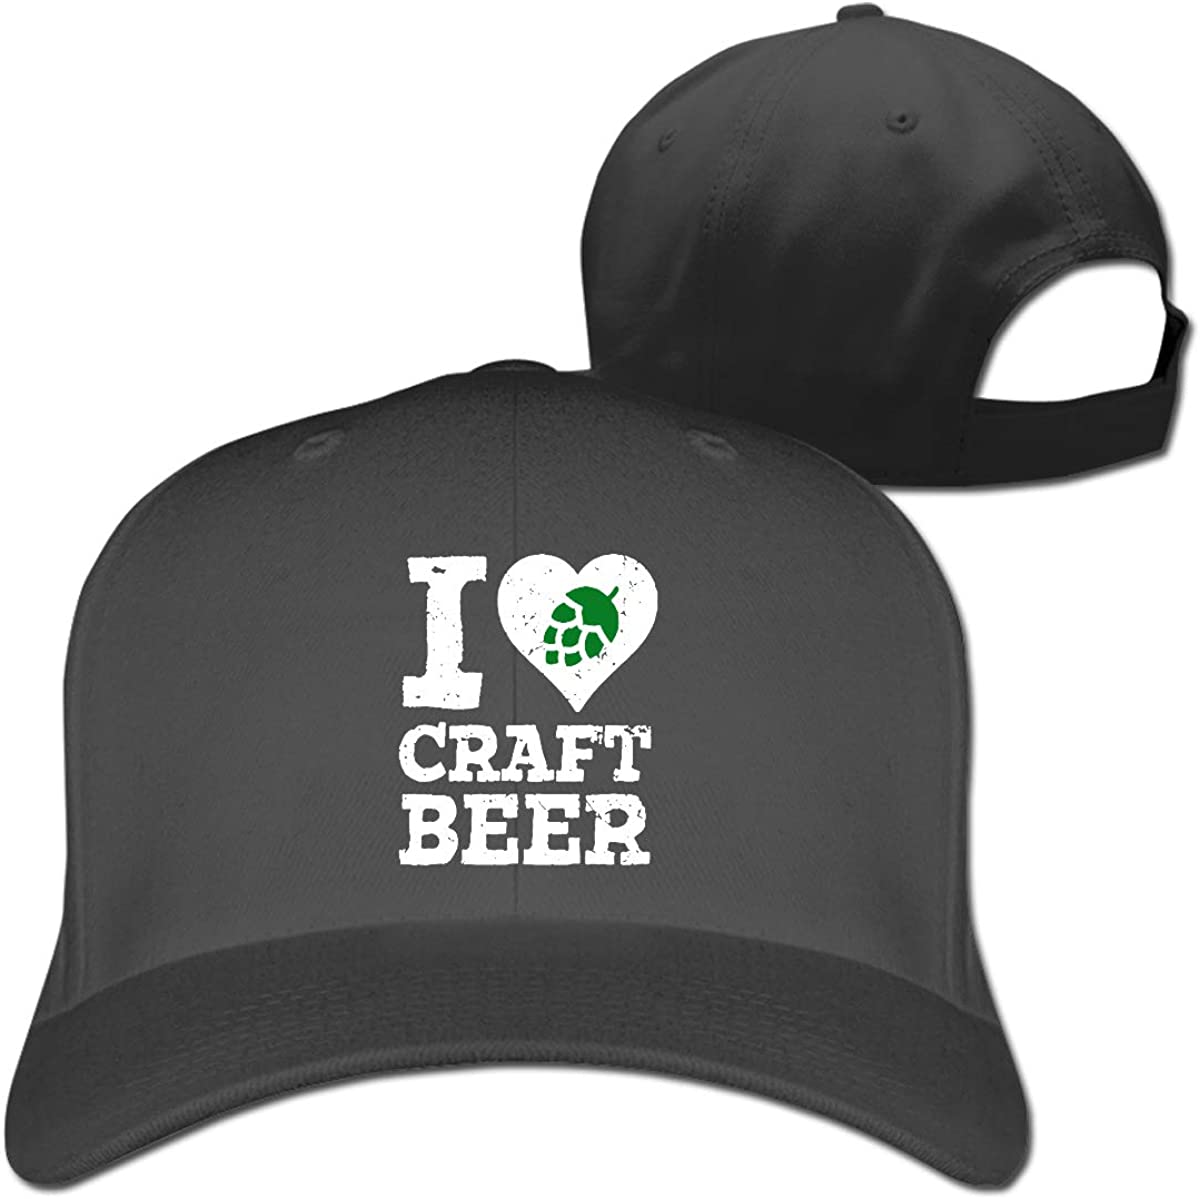 I Love Craft Beer Classic Adjustable Cotton Baseball Caps Trucker Driver Hat Outdoor Cap Fitted Hats Dad Hat Black